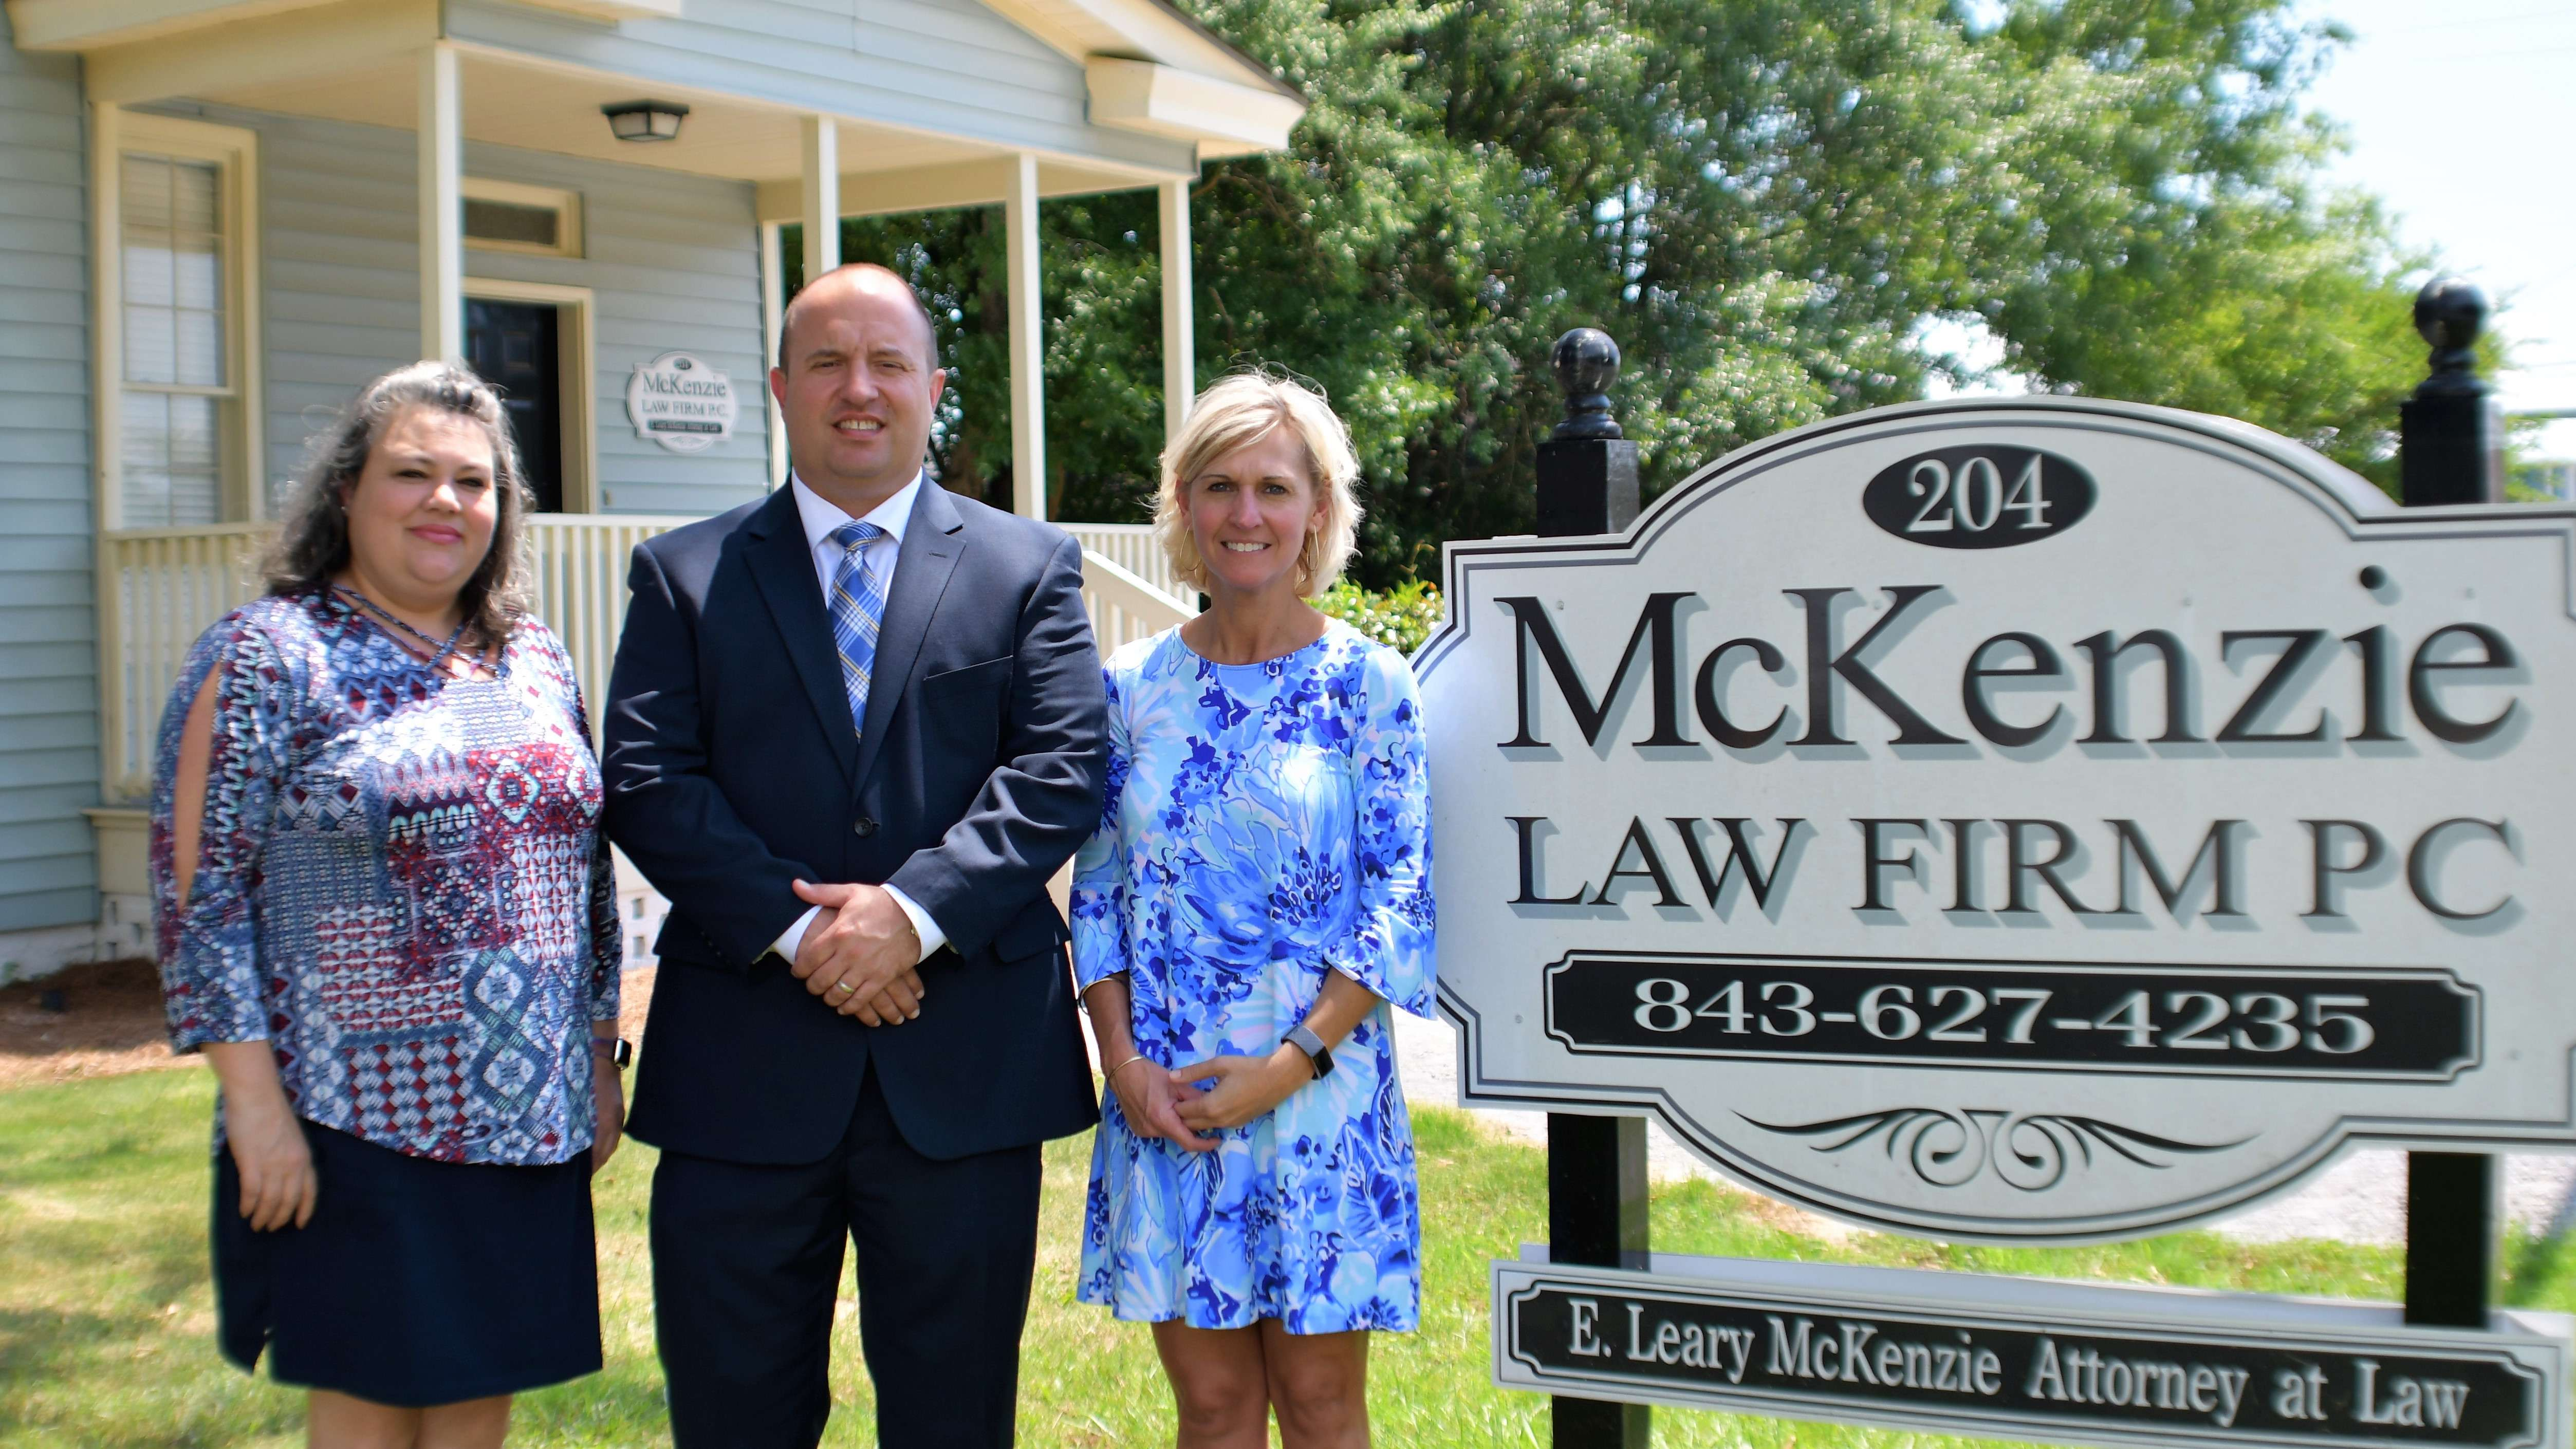 Searching for Local Legal Services Near Dillon, SC?